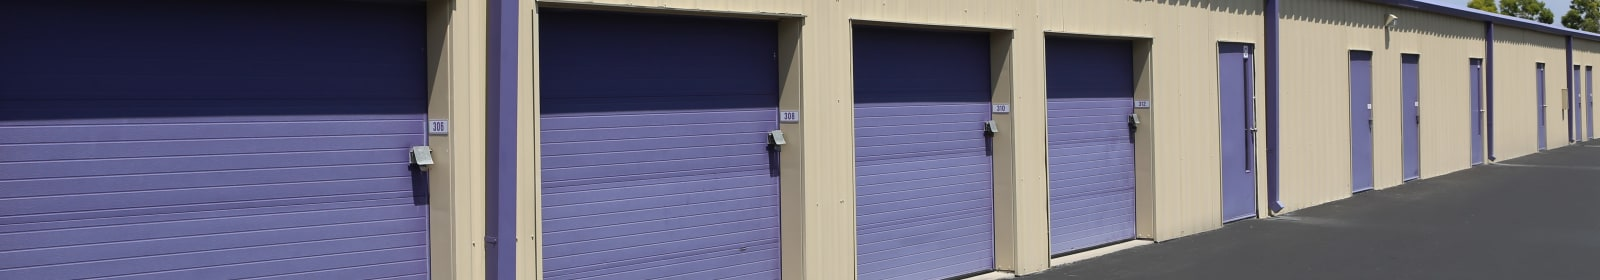 Climate-controlled storage at Midgard Self Storage in Naples. Florida